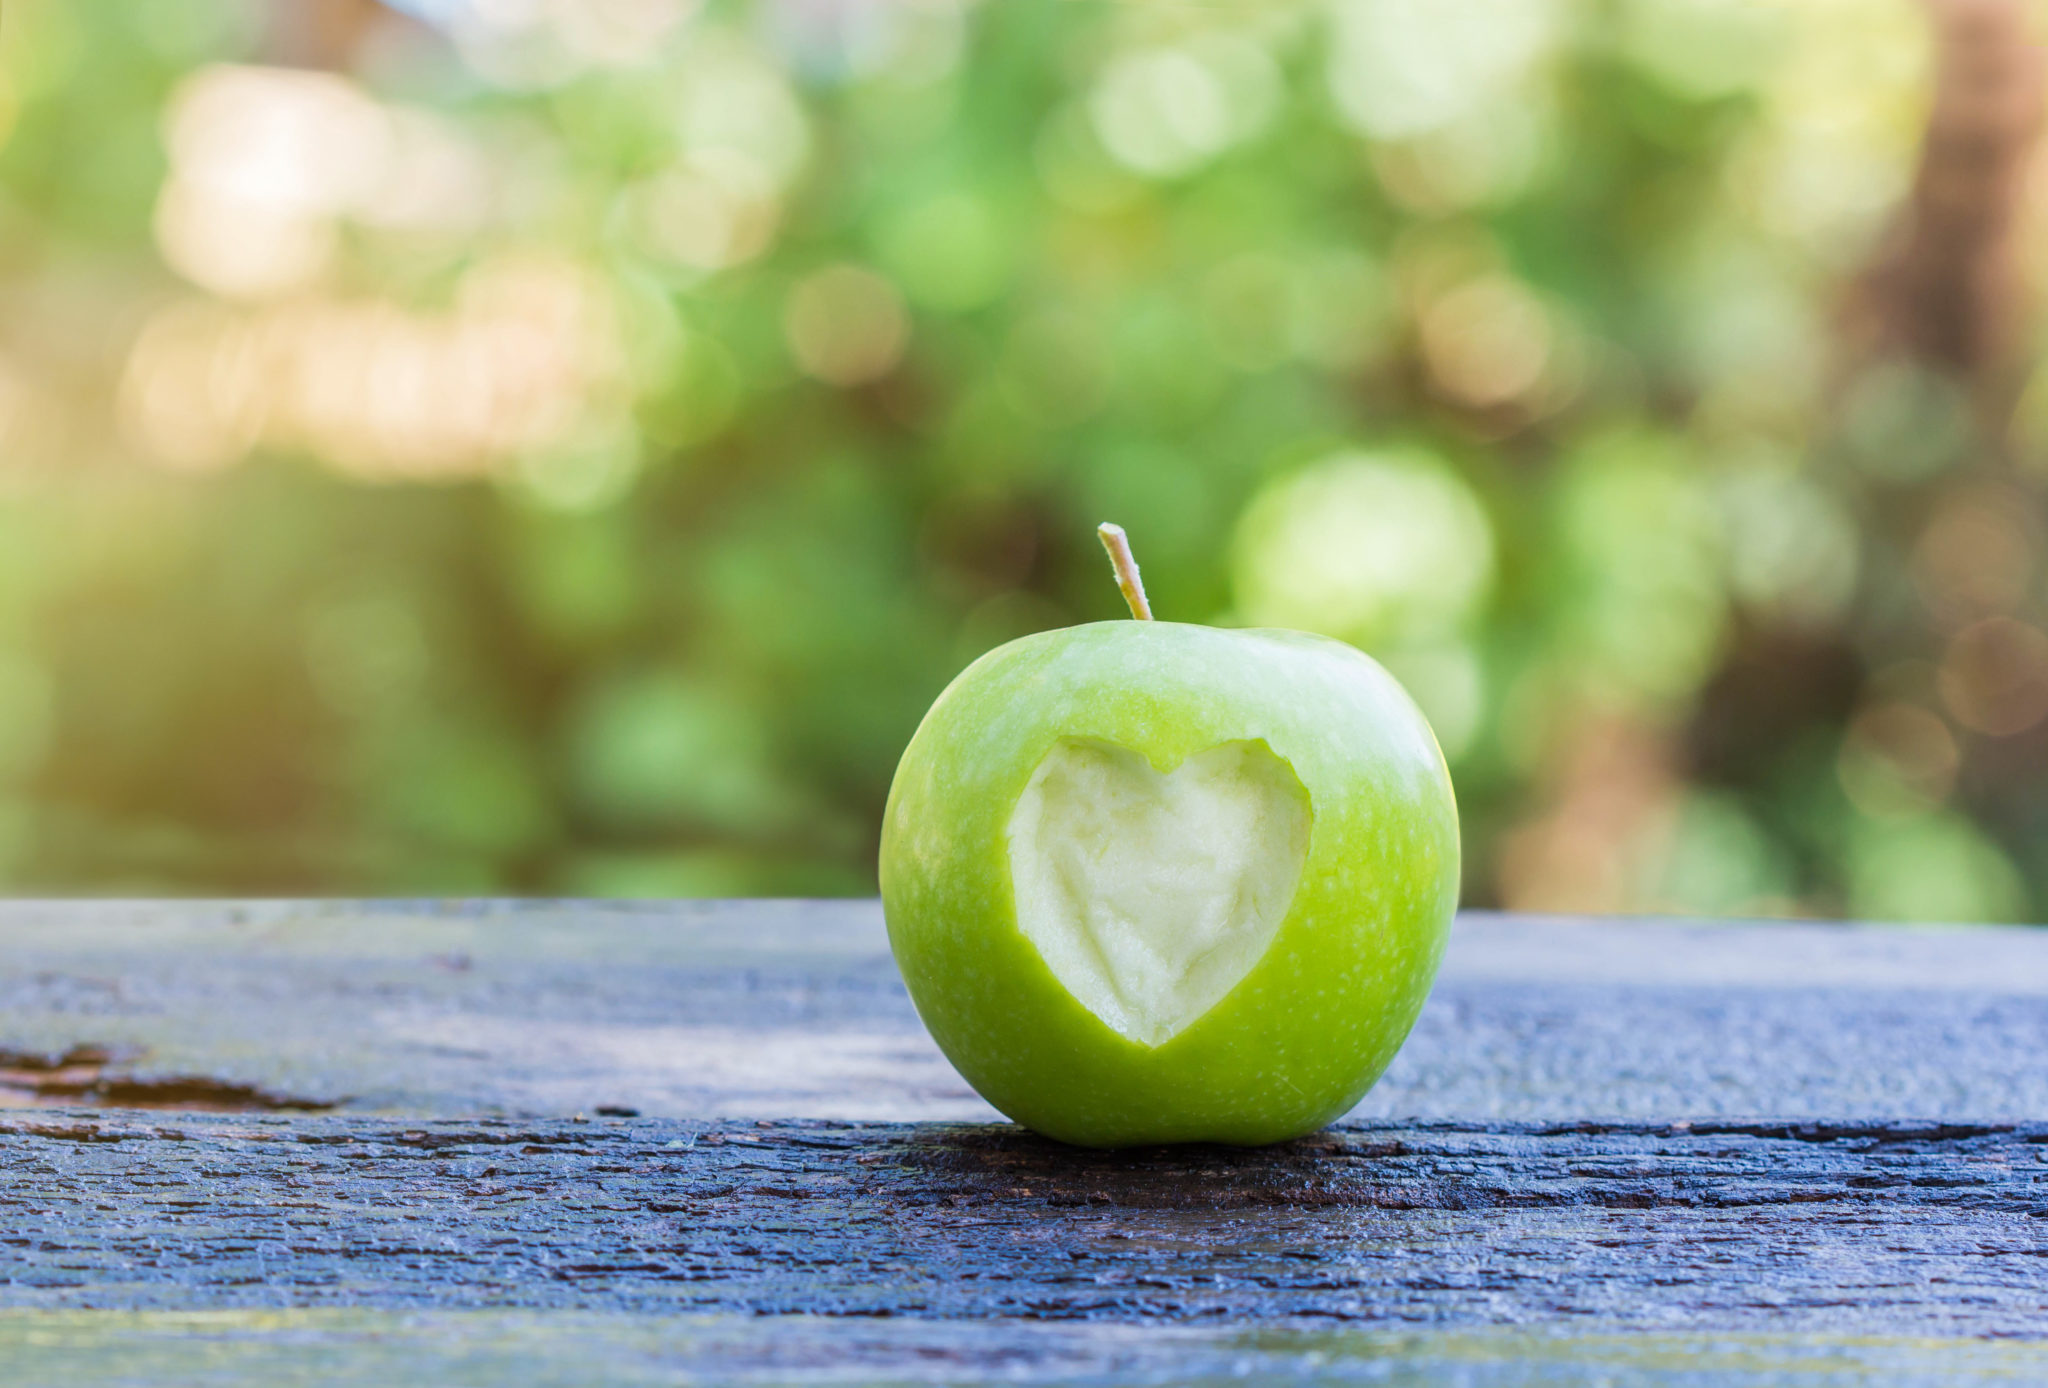 fresh green apple with heart shape cut out of it on wooden table.